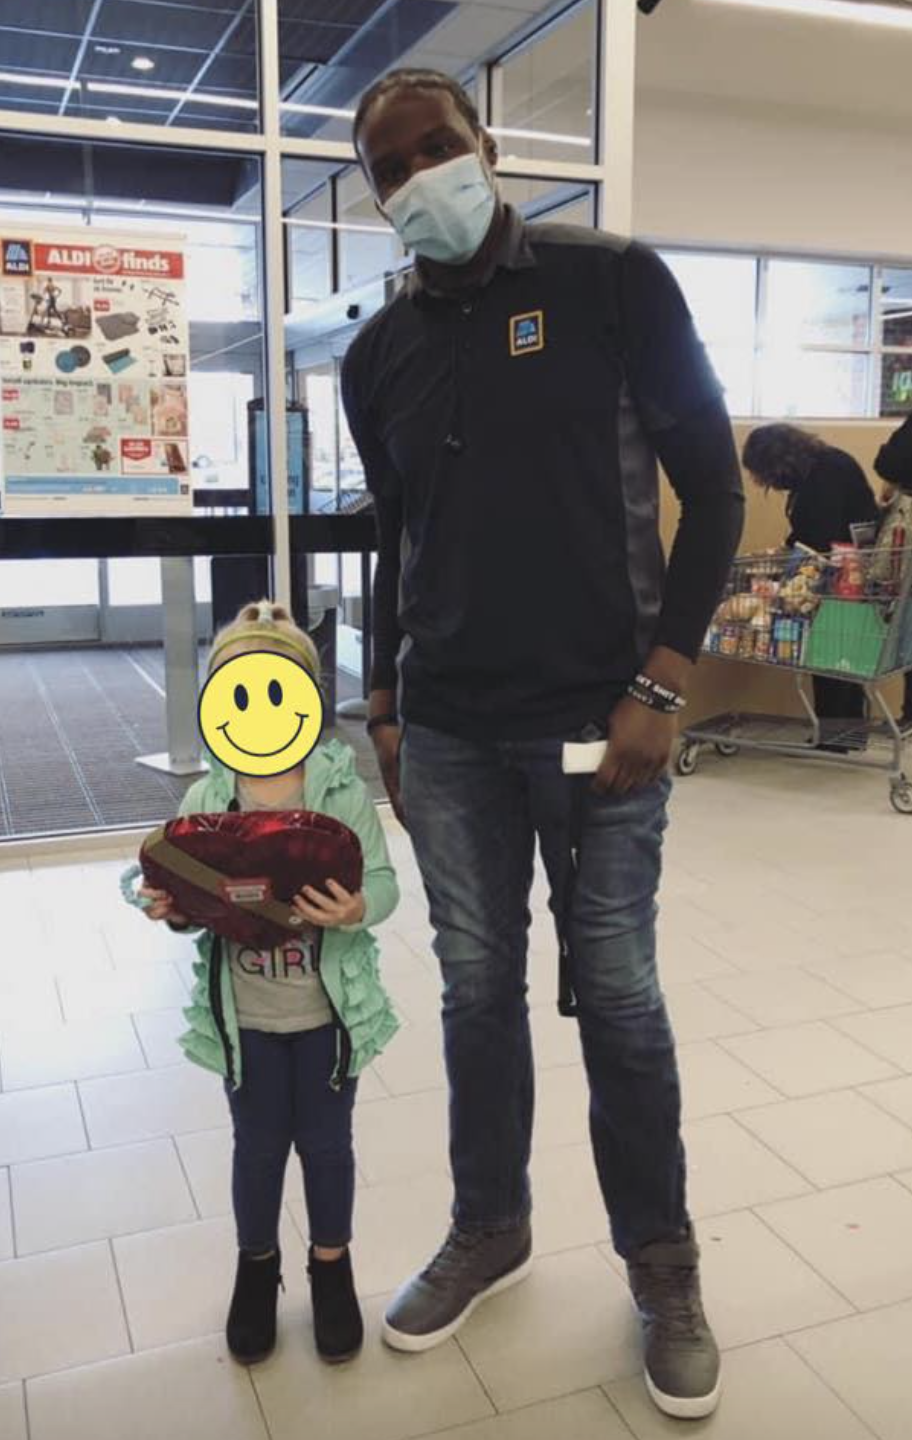 Aldi employee Kawon pictured with the young girl.